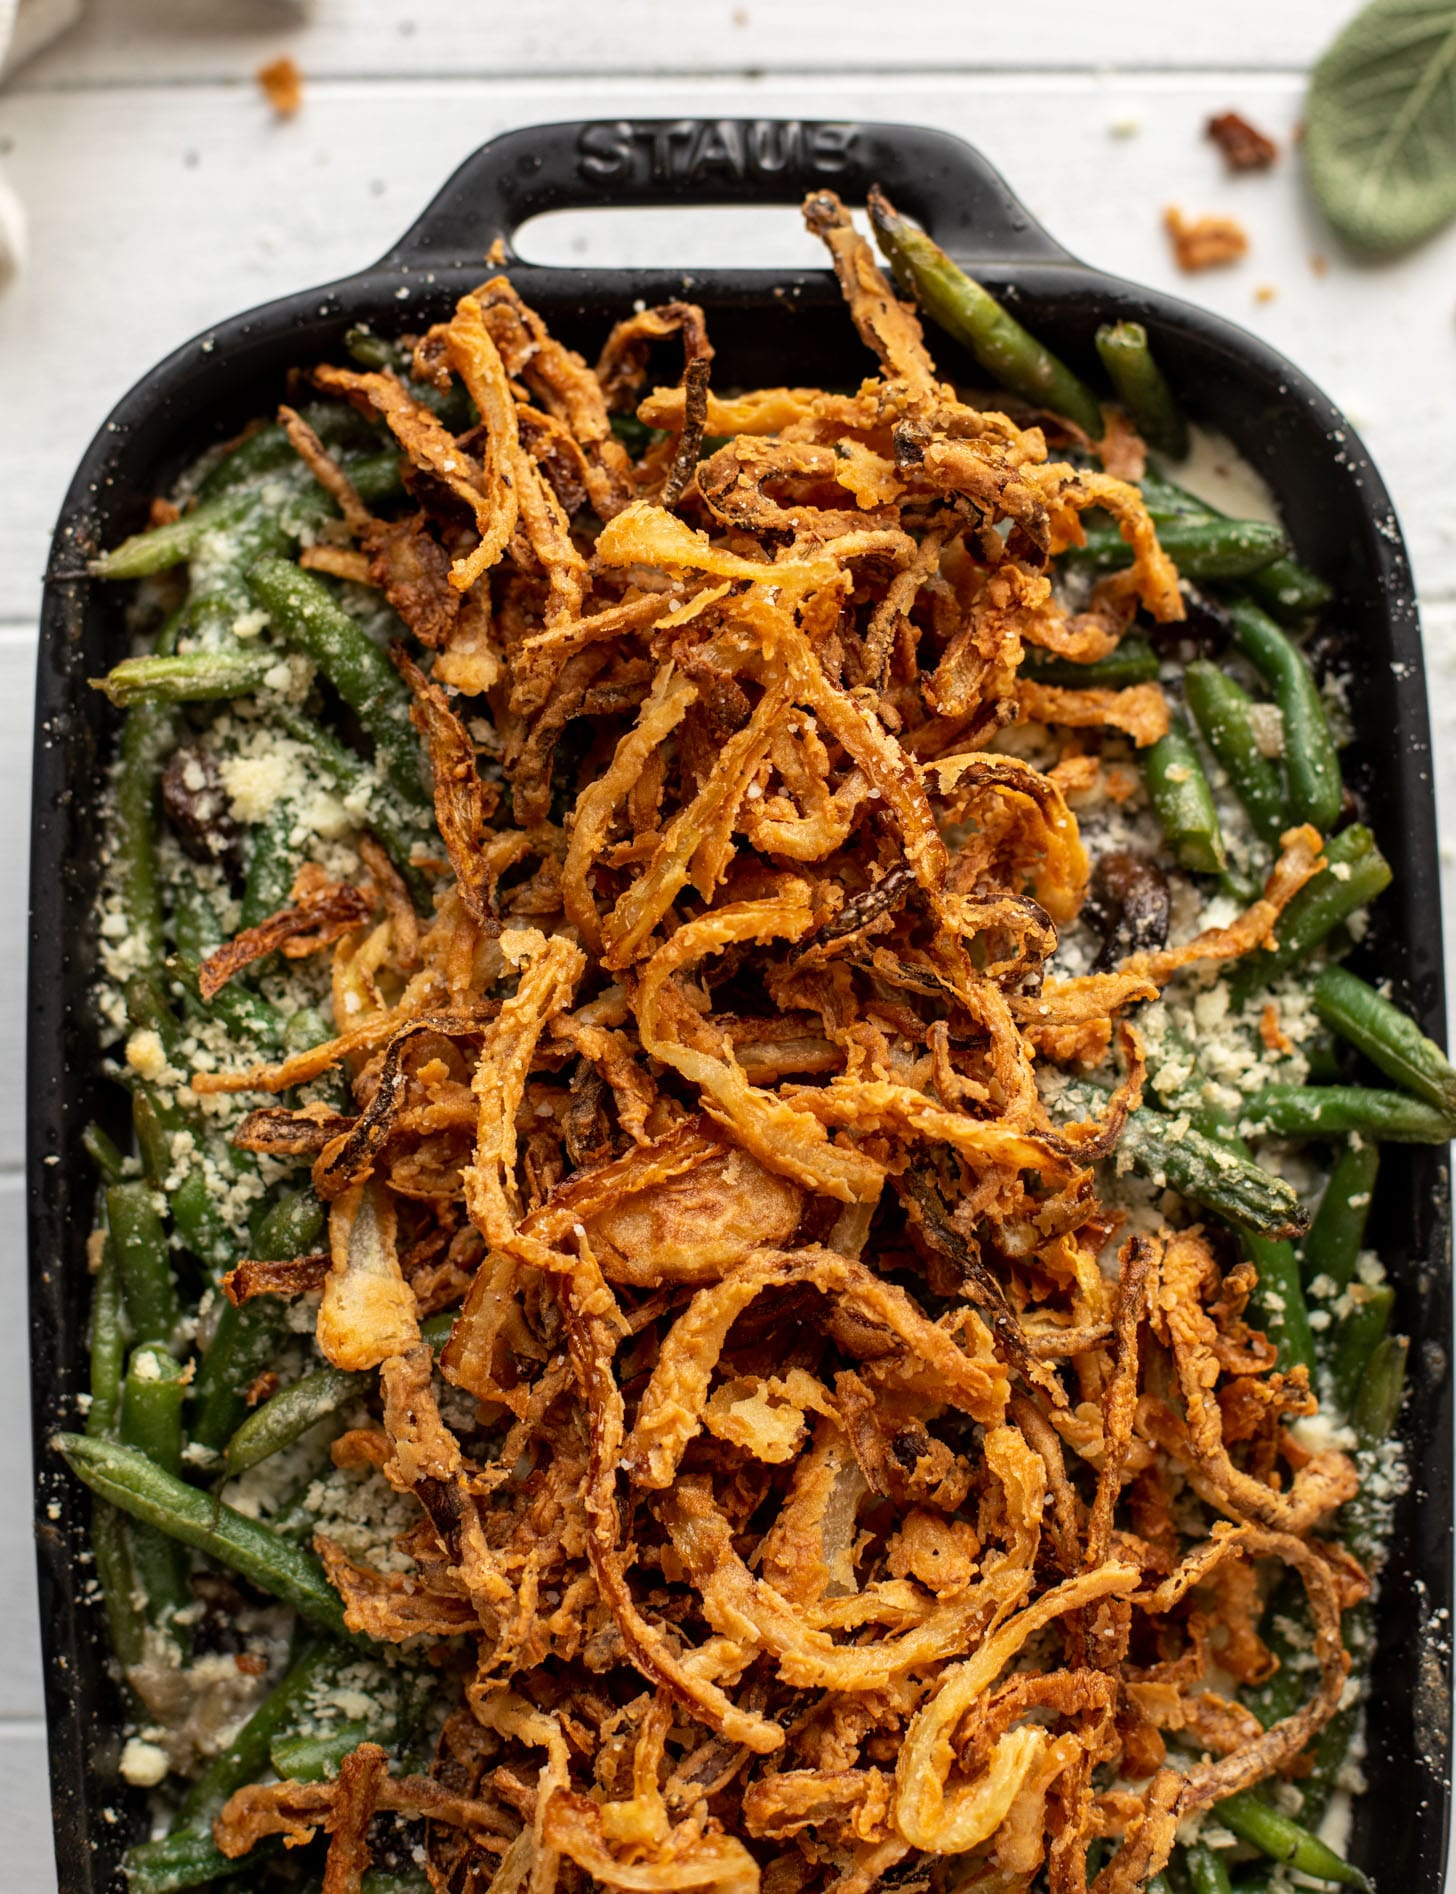 green bean casserole with crispy french fried onions